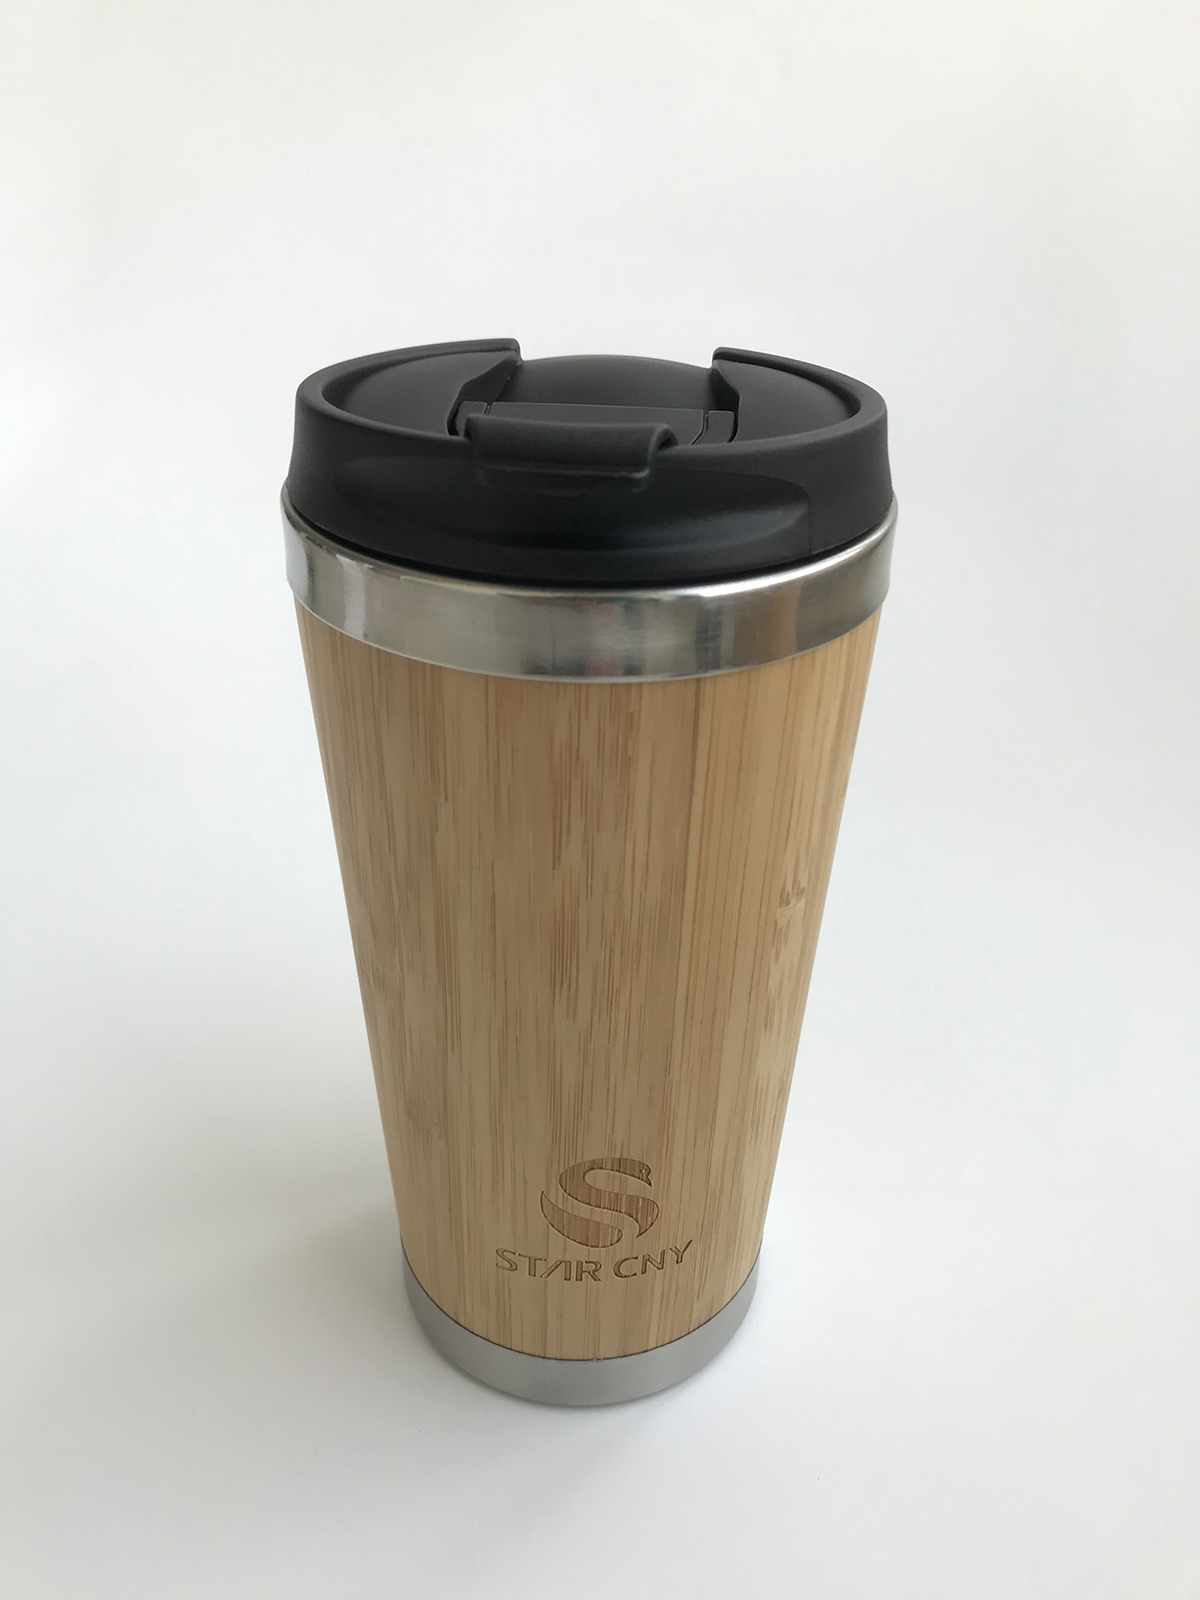 H67356 Stainless Steel Bamboo Coffee Tumbler